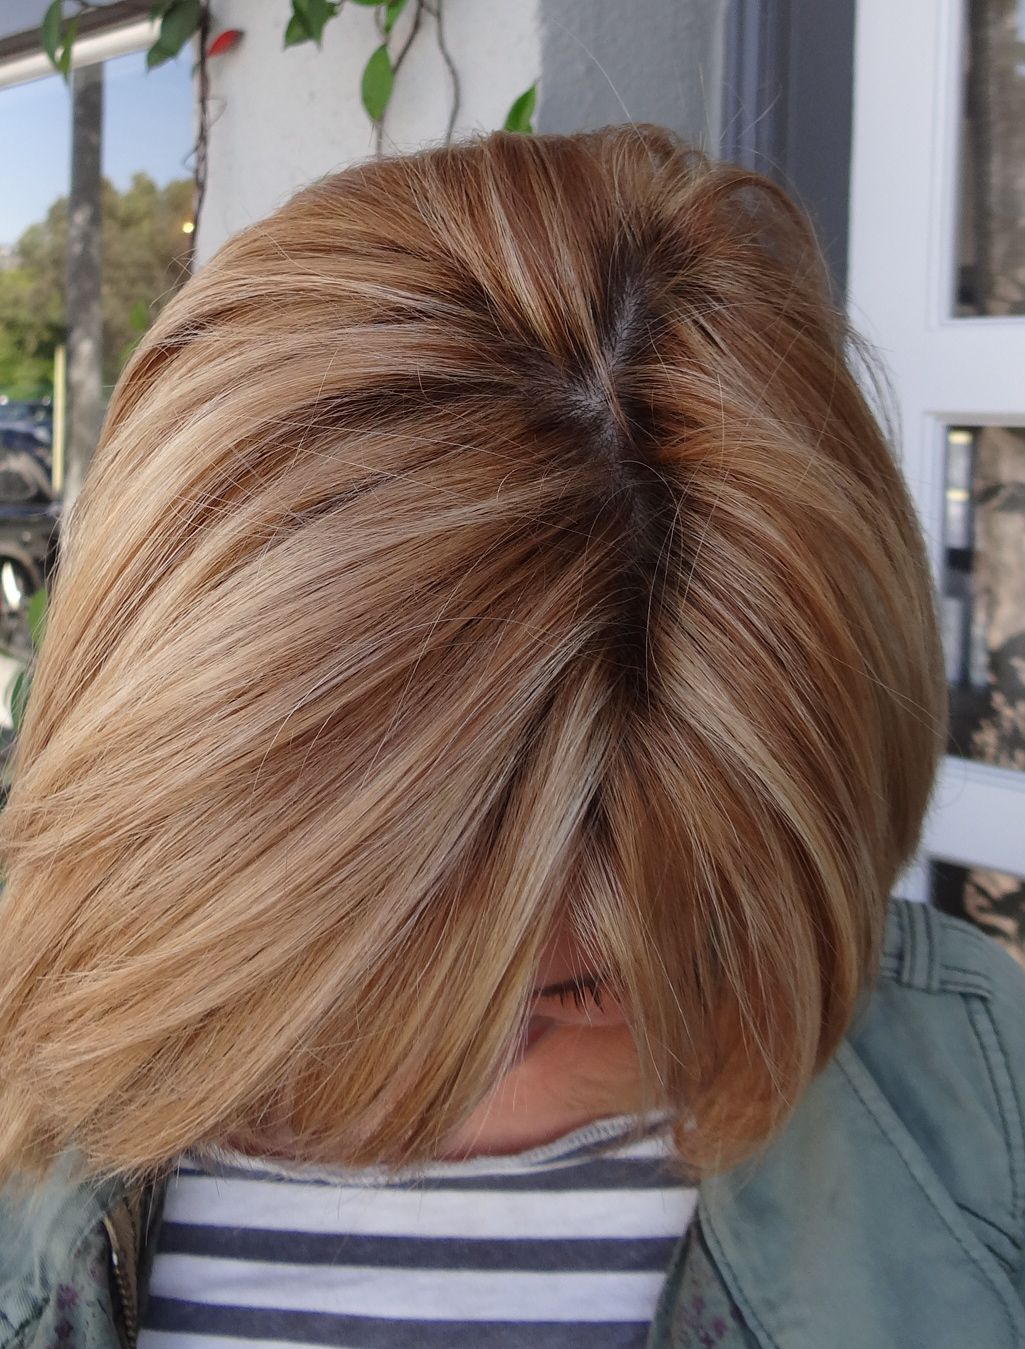 How To Fix Brassy Hair Hair Color Cuts Pinterest Brassy Hair